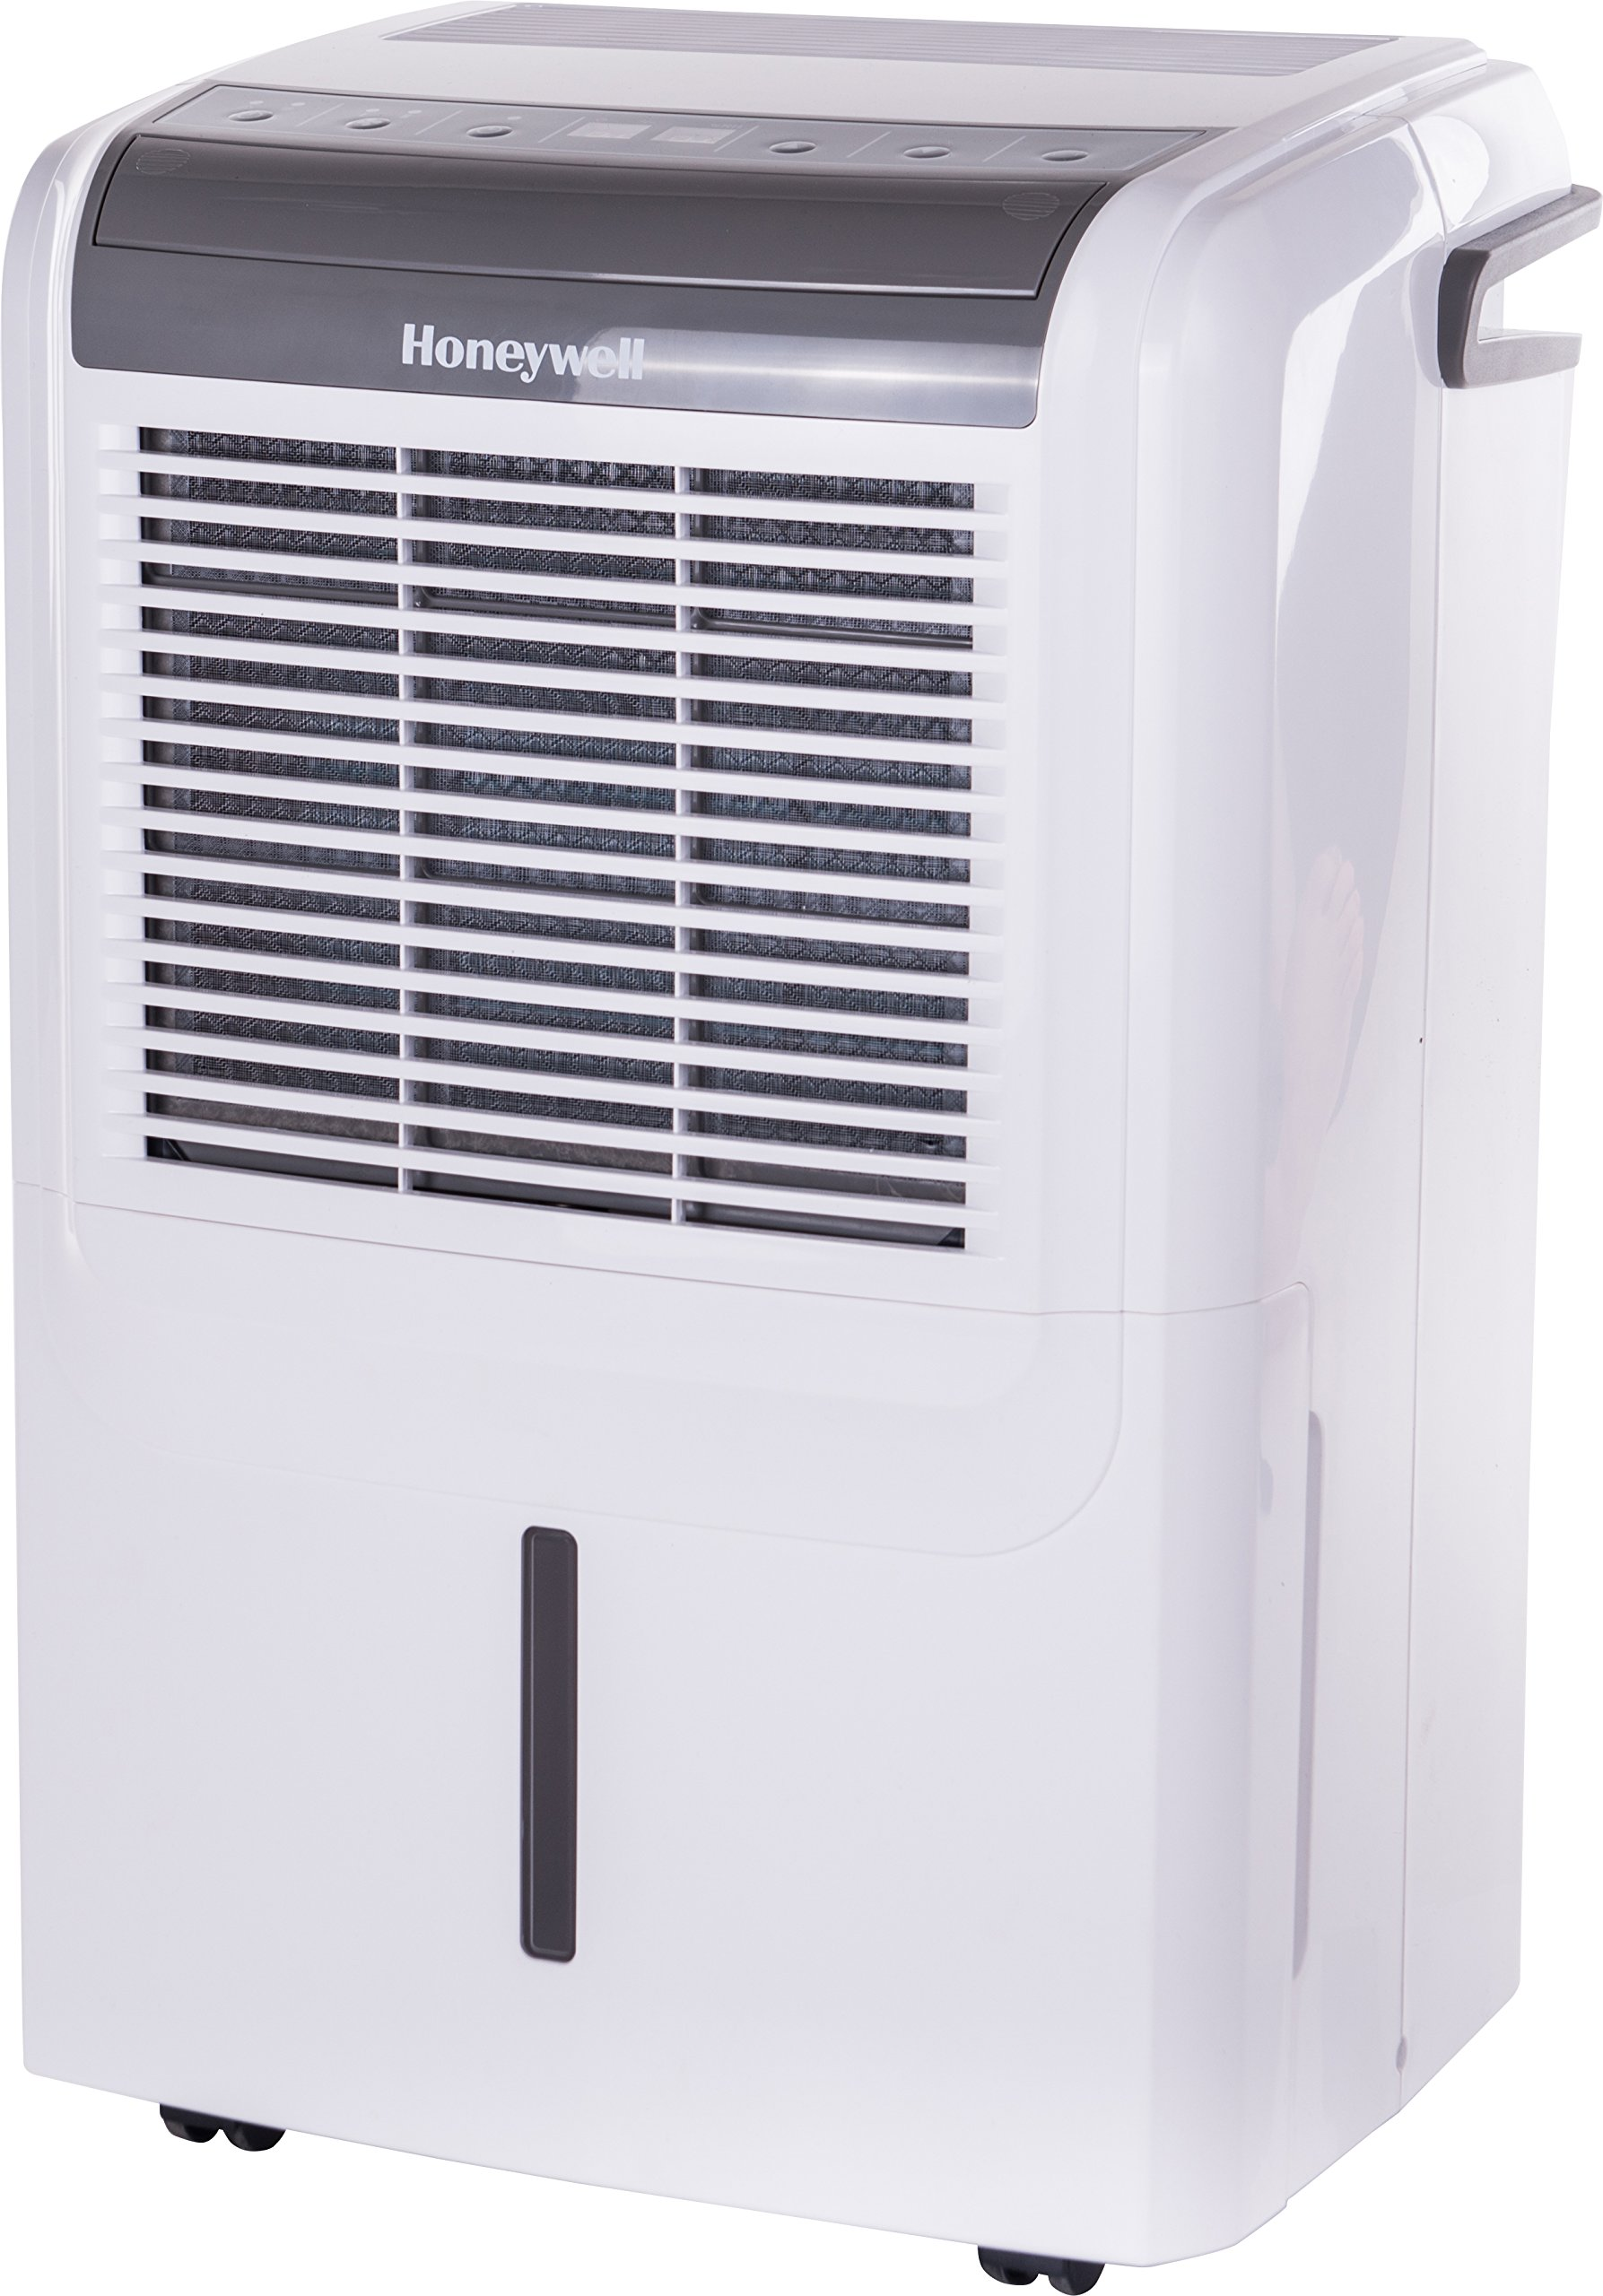 Honeywell DH50W 50 pint Energy Star Dehumidifier for Basement & Rooms up To 3000 Sq ft with Washable Air Filter to Remove Odor, Anti-Spill Design & Continuous Drain